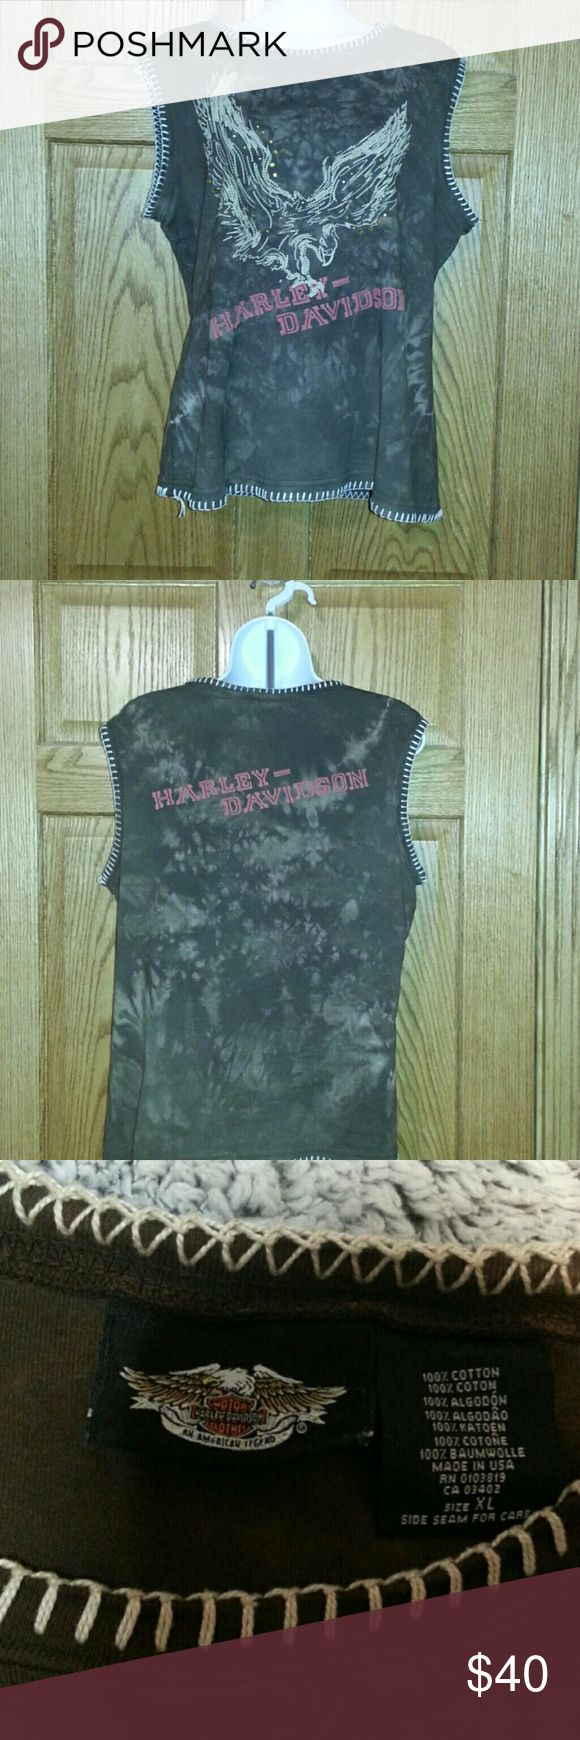 Very cute Harley Davidson vest bought at Sturgis. Only worn a couple of times Harley-Davidson Jackets & Coats Vests